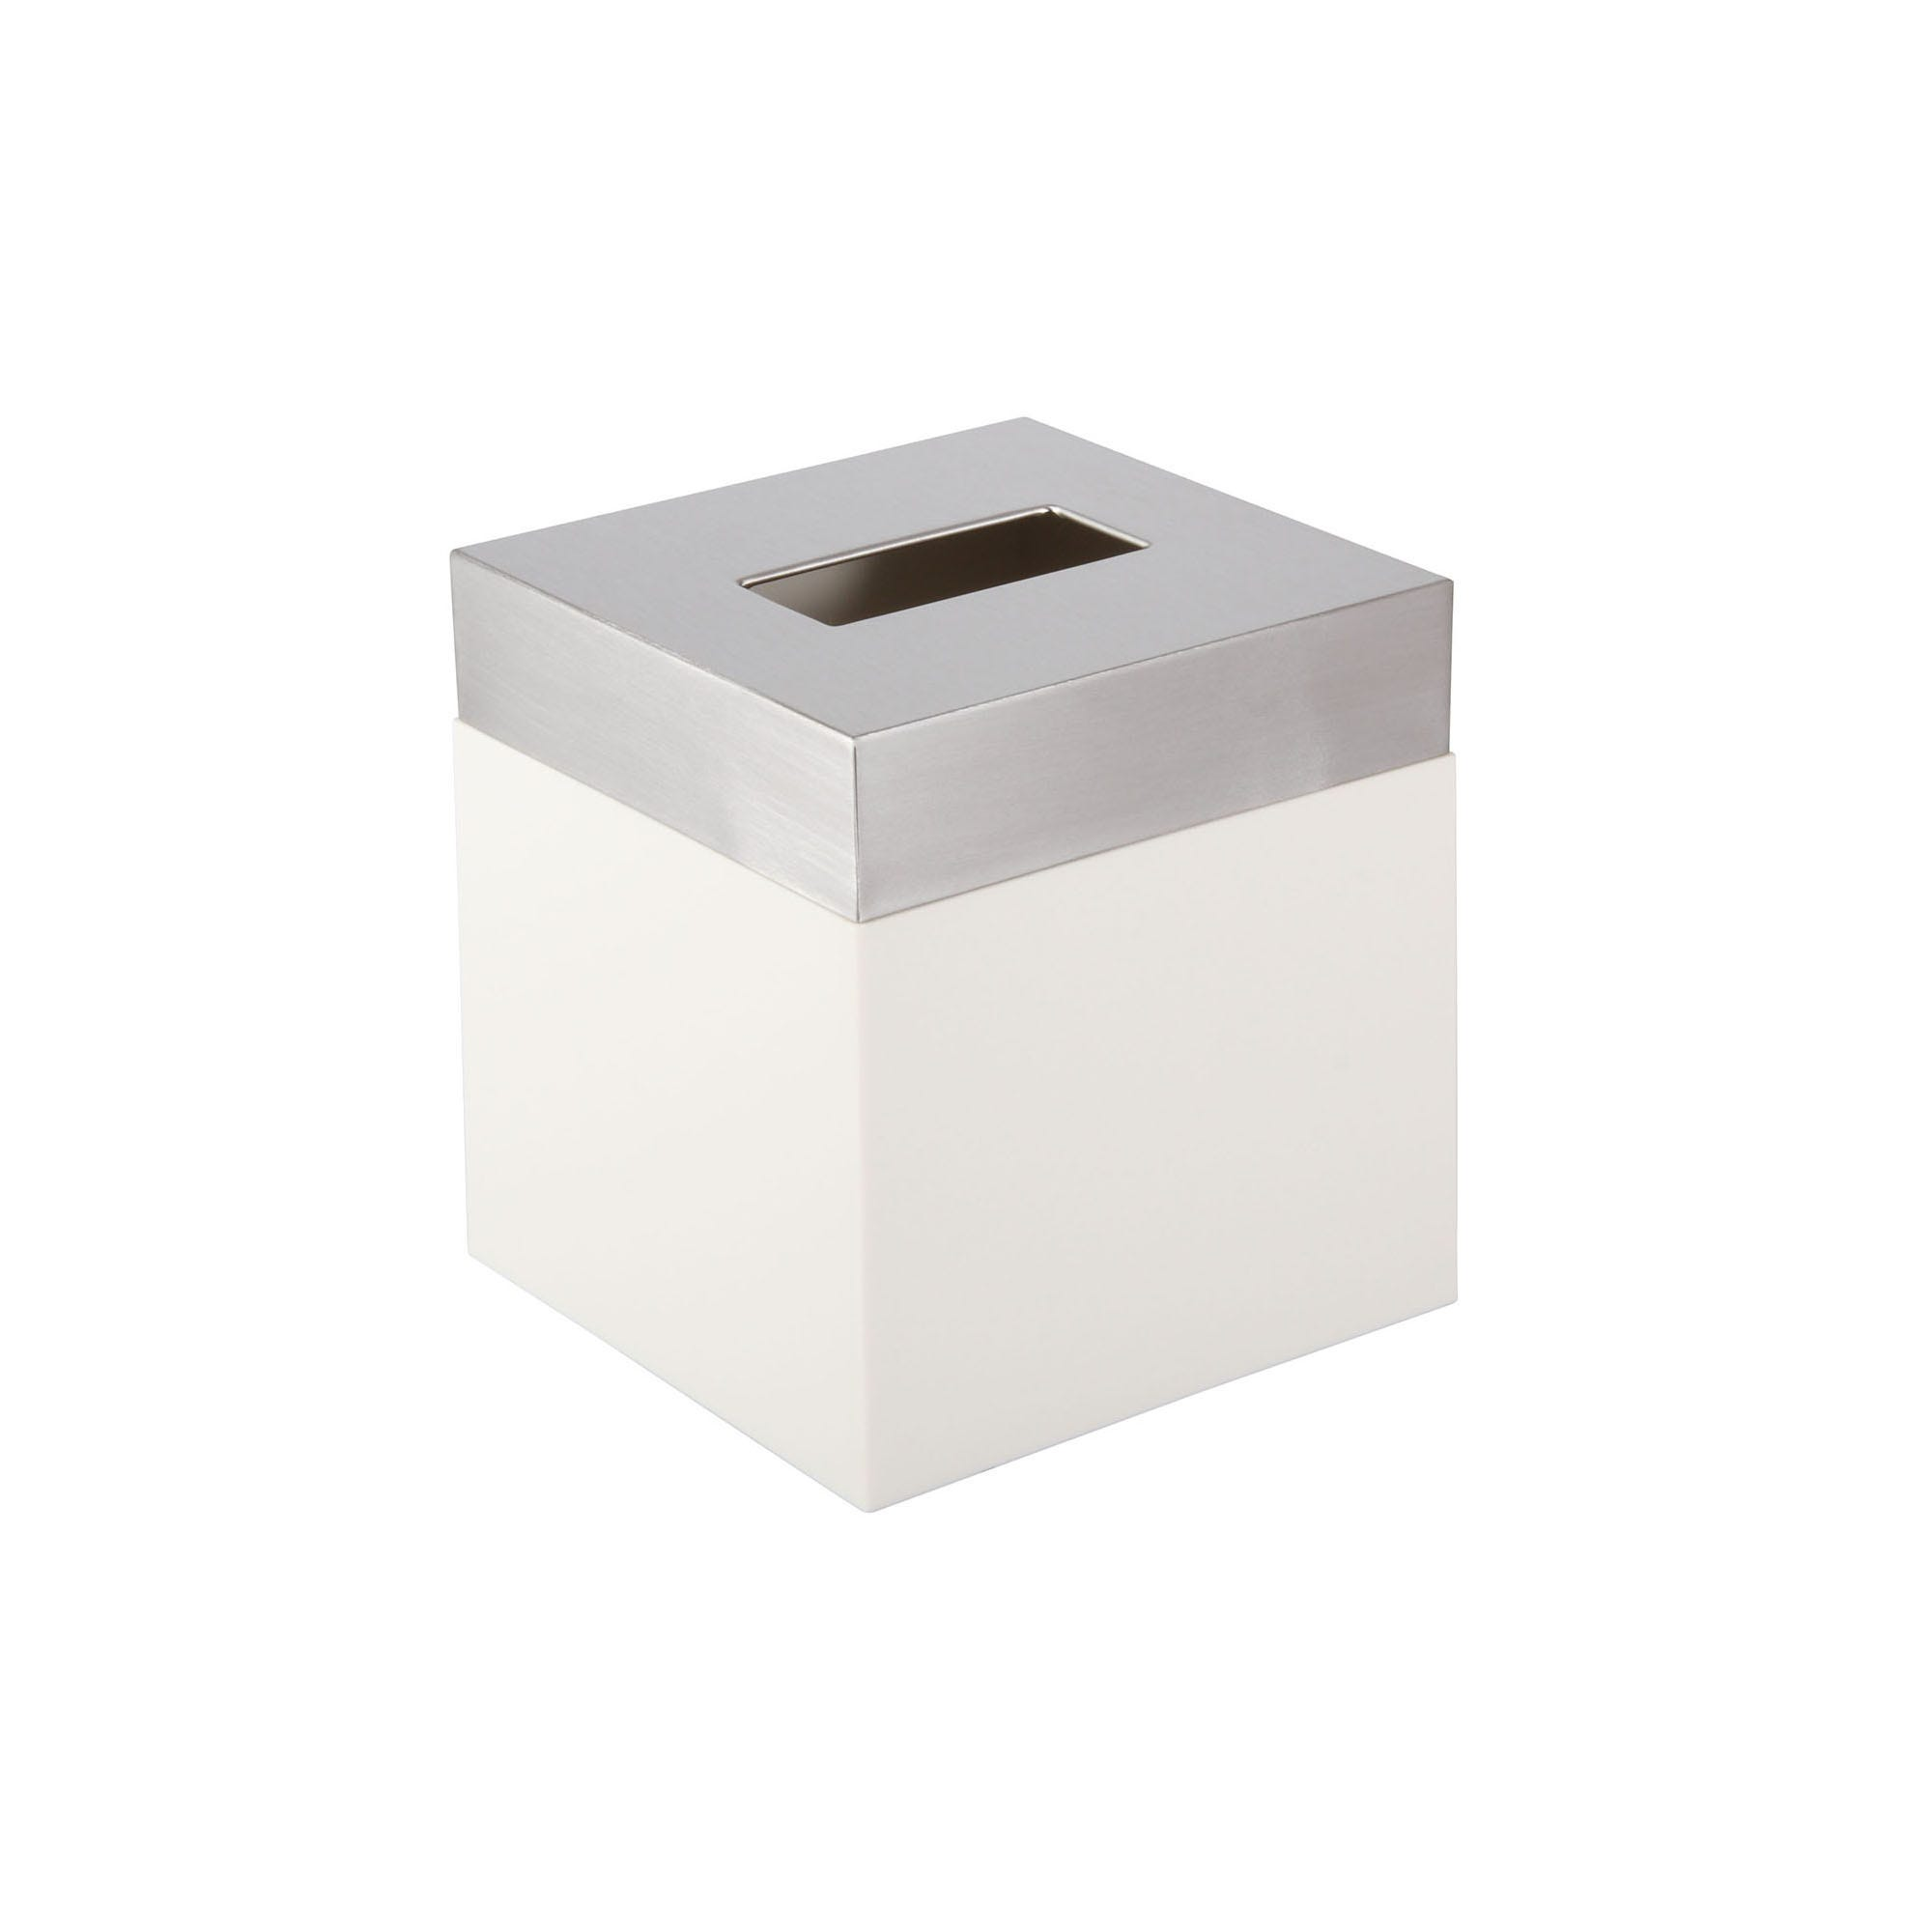 Dispensador de pañuelos desechables Namaro Design™, en blanco